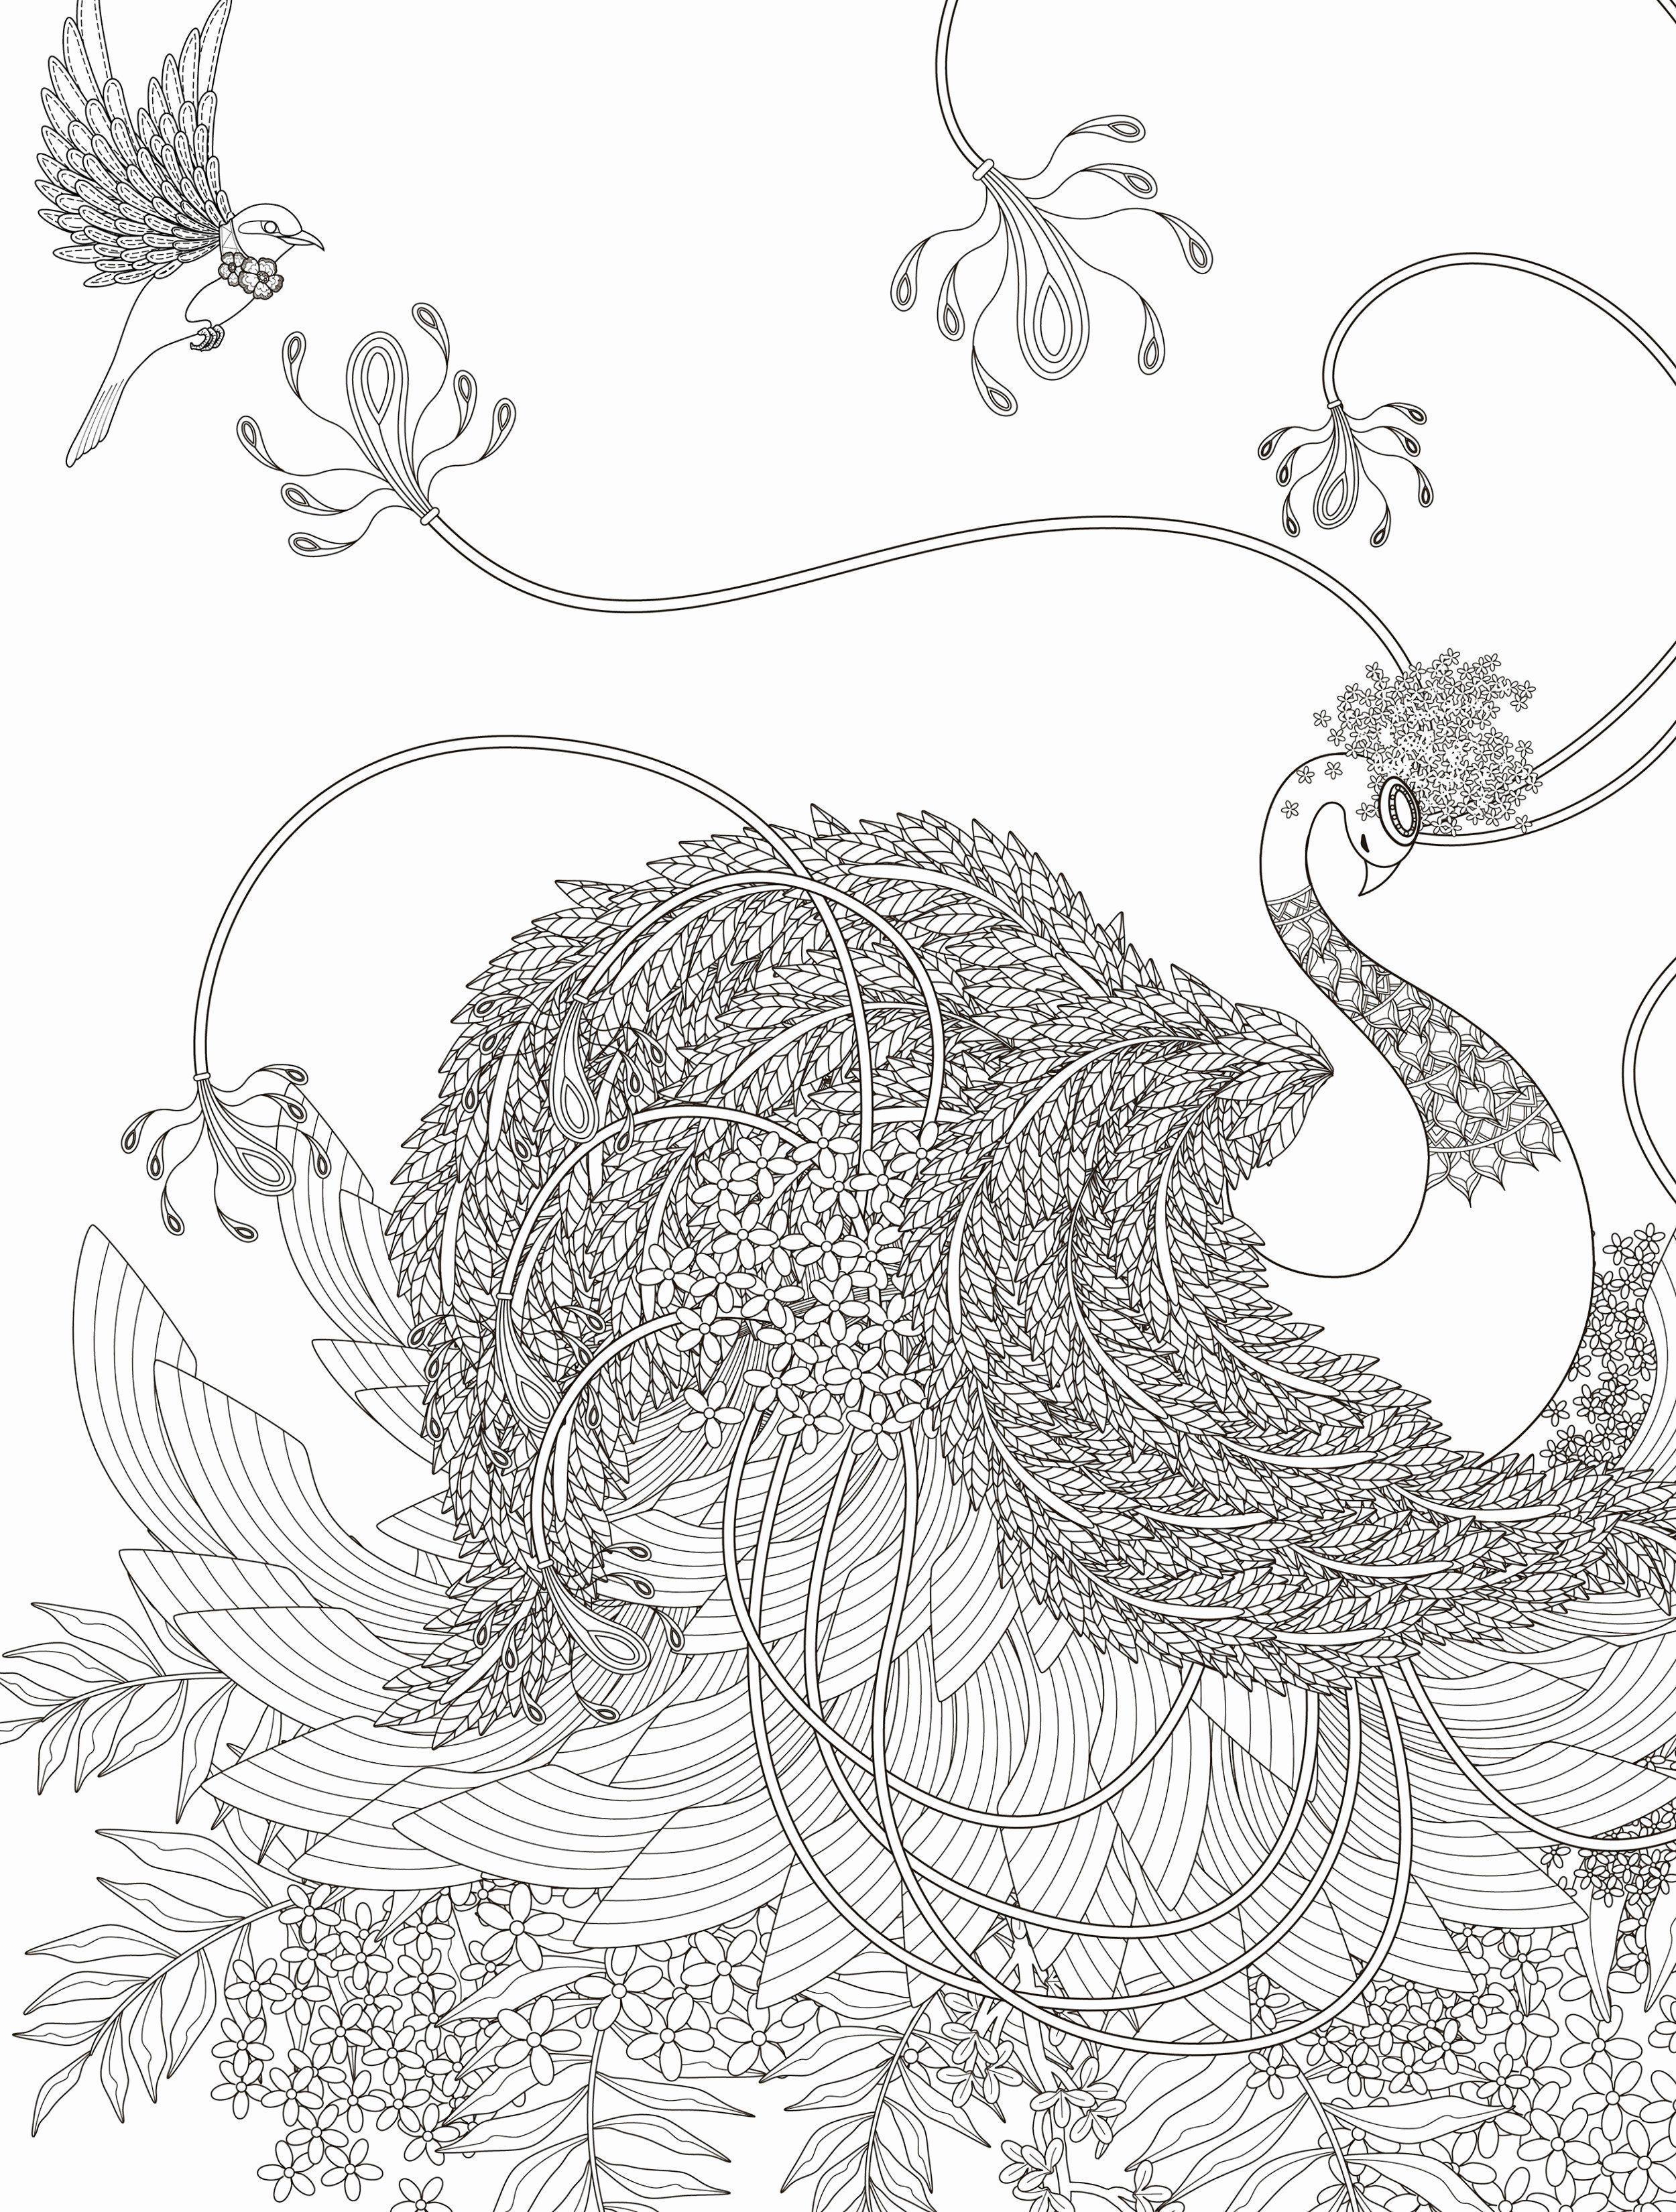 Abc Coloring Pages Luxury Wildlife Coloring Pages Unicorn Coloring Pages Bird Coloring Pages Animal Coloring Pages